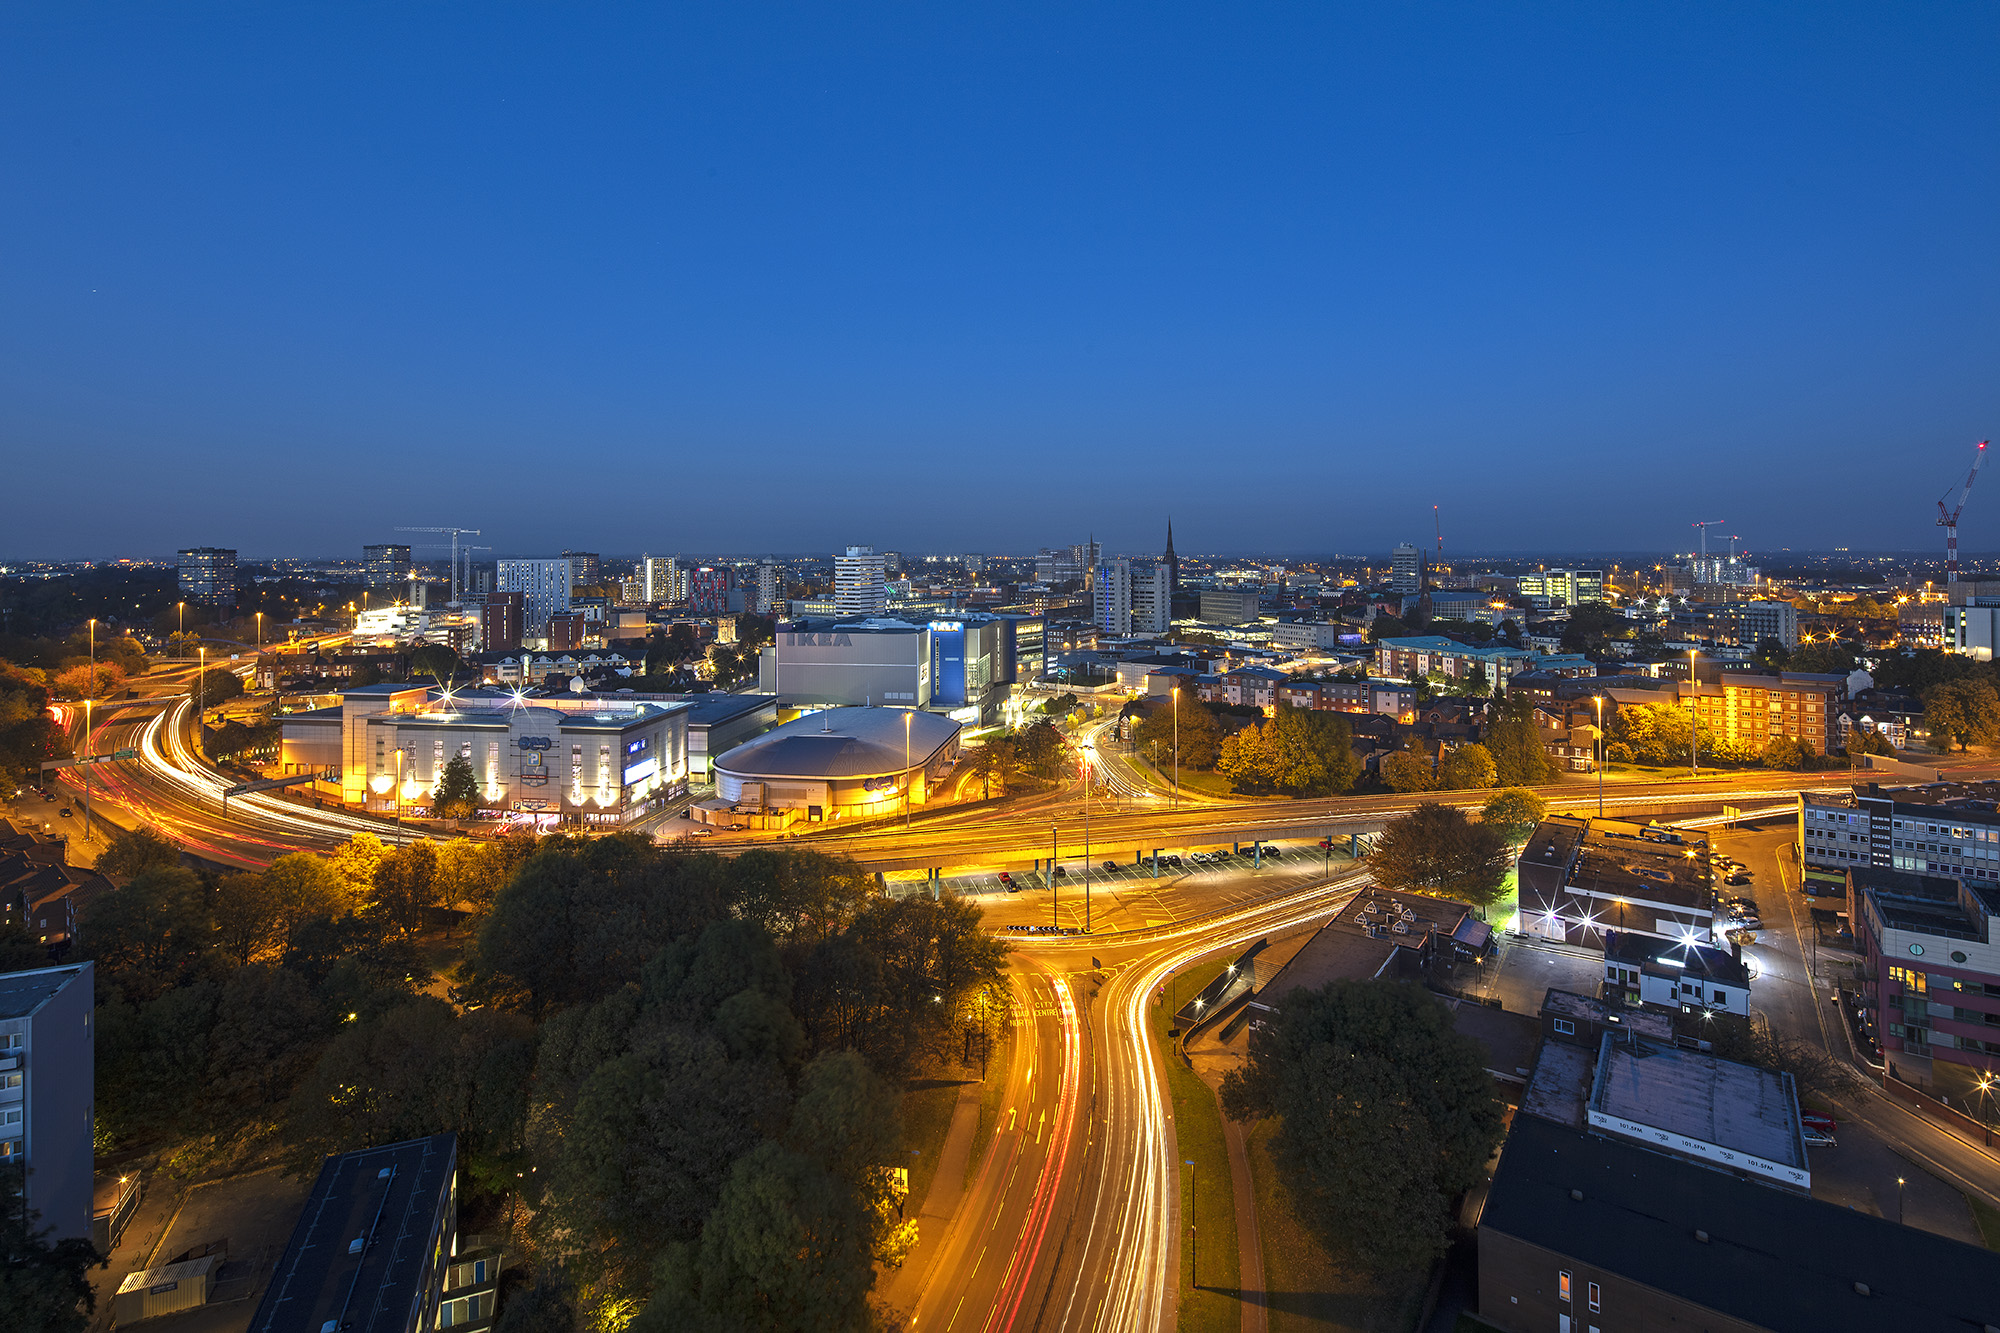 Image: A skyline showing trails of light around Coventry's ring road at night.